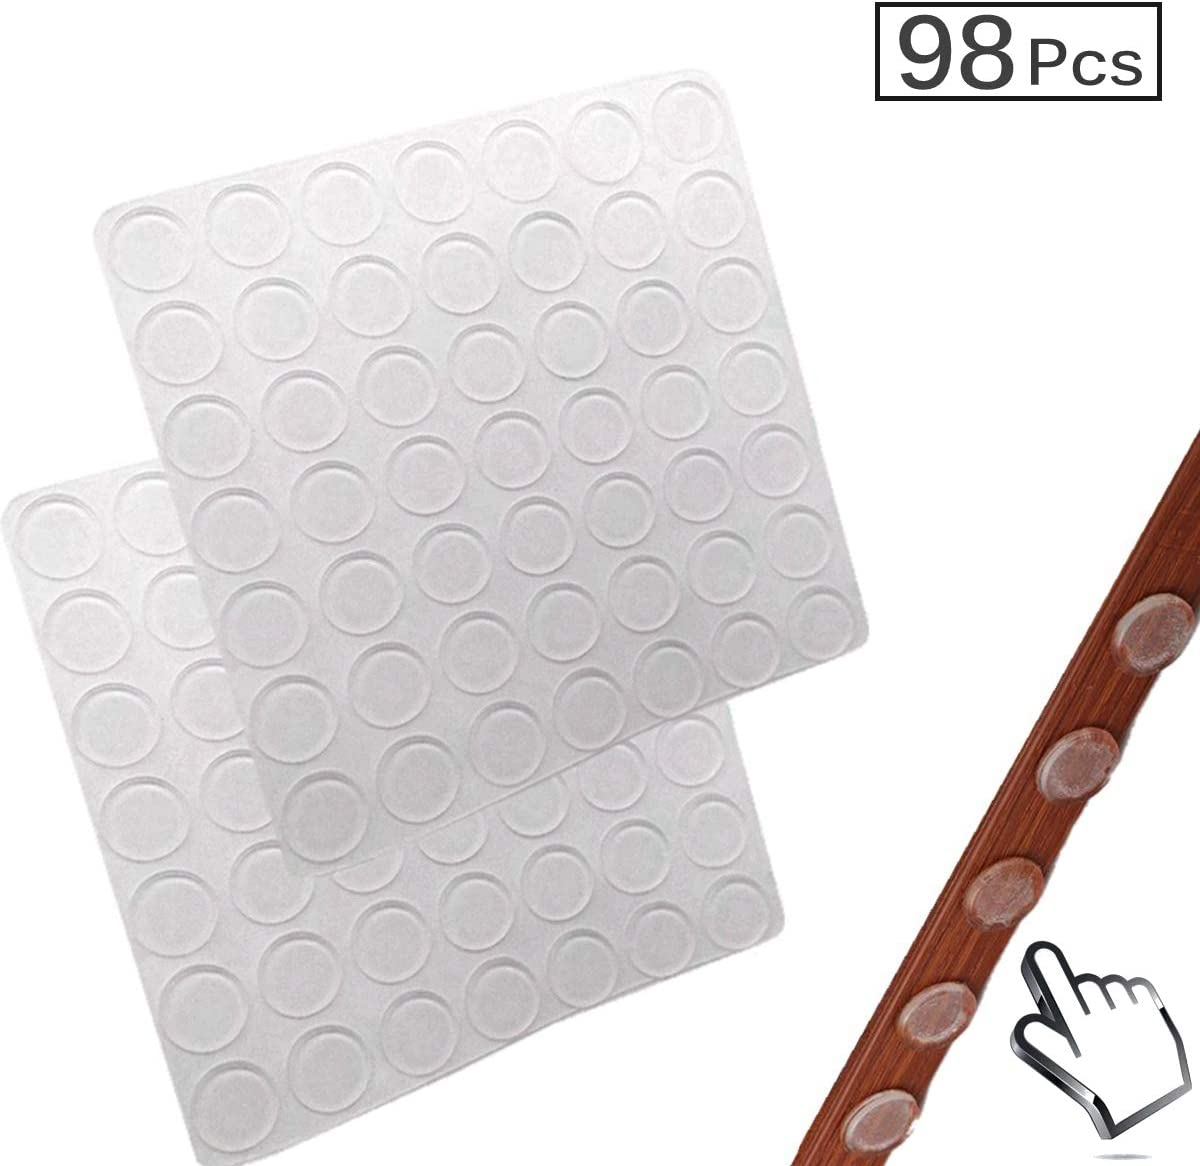 "Clear Glass Table Top Bumper Large Bumpers Pads 98PCS 3/5"" Non Slip Adhesive Rubber Bumps Pads for Furniture Electronics Laptop Mirrors"